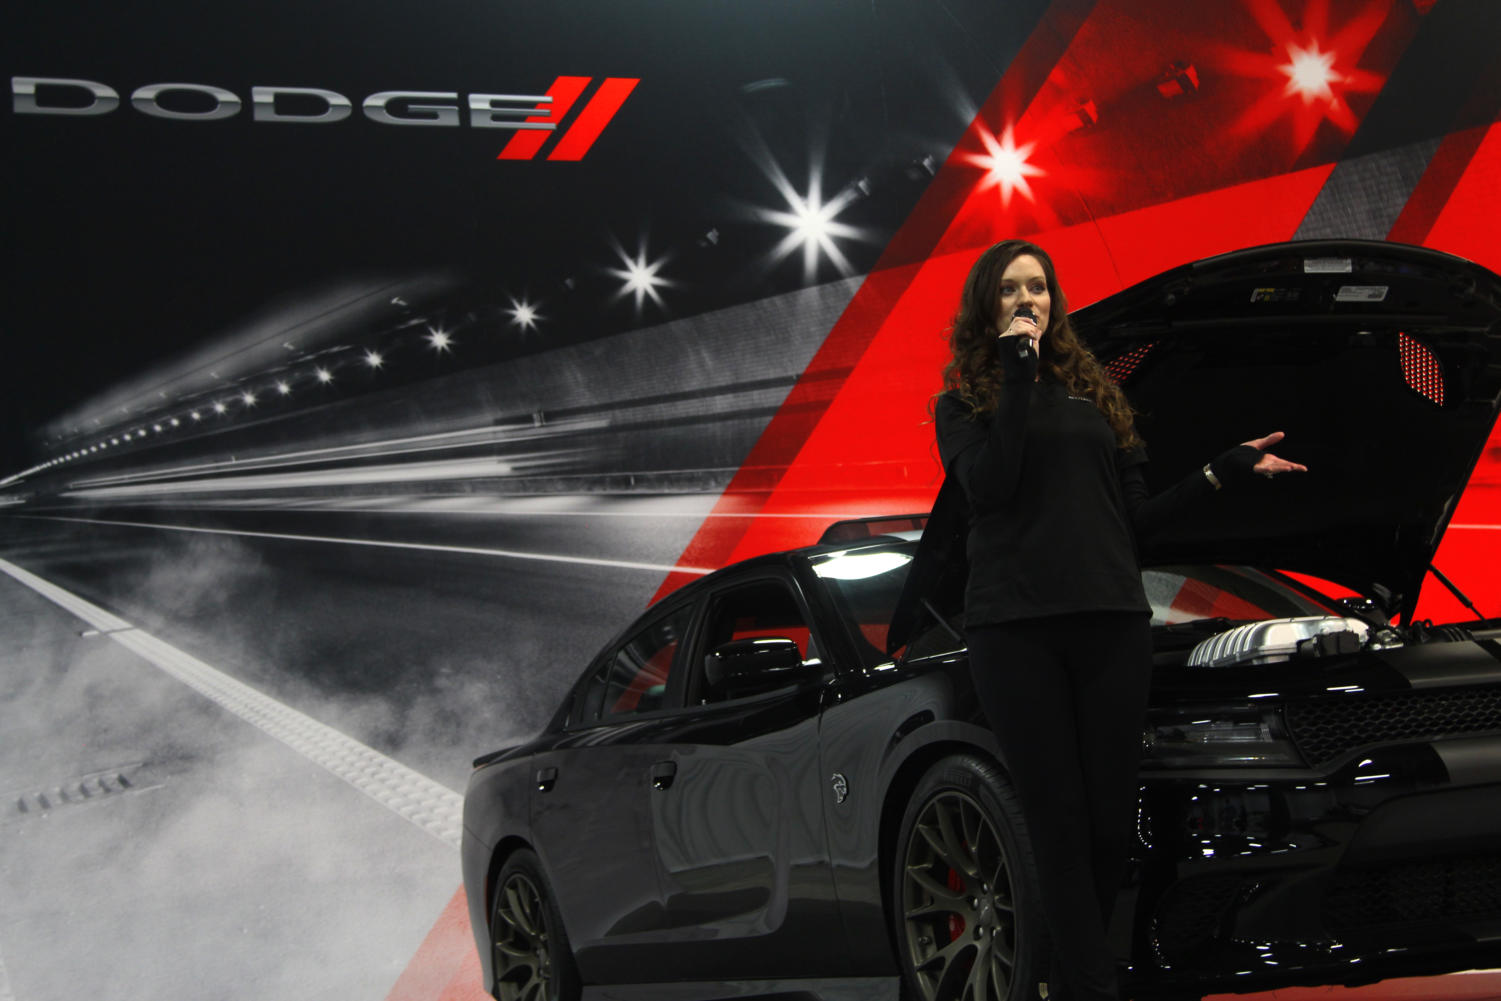 Dodge+saleswoman+speaks+about+how+fast+the+new+Dodge+Demon+is.